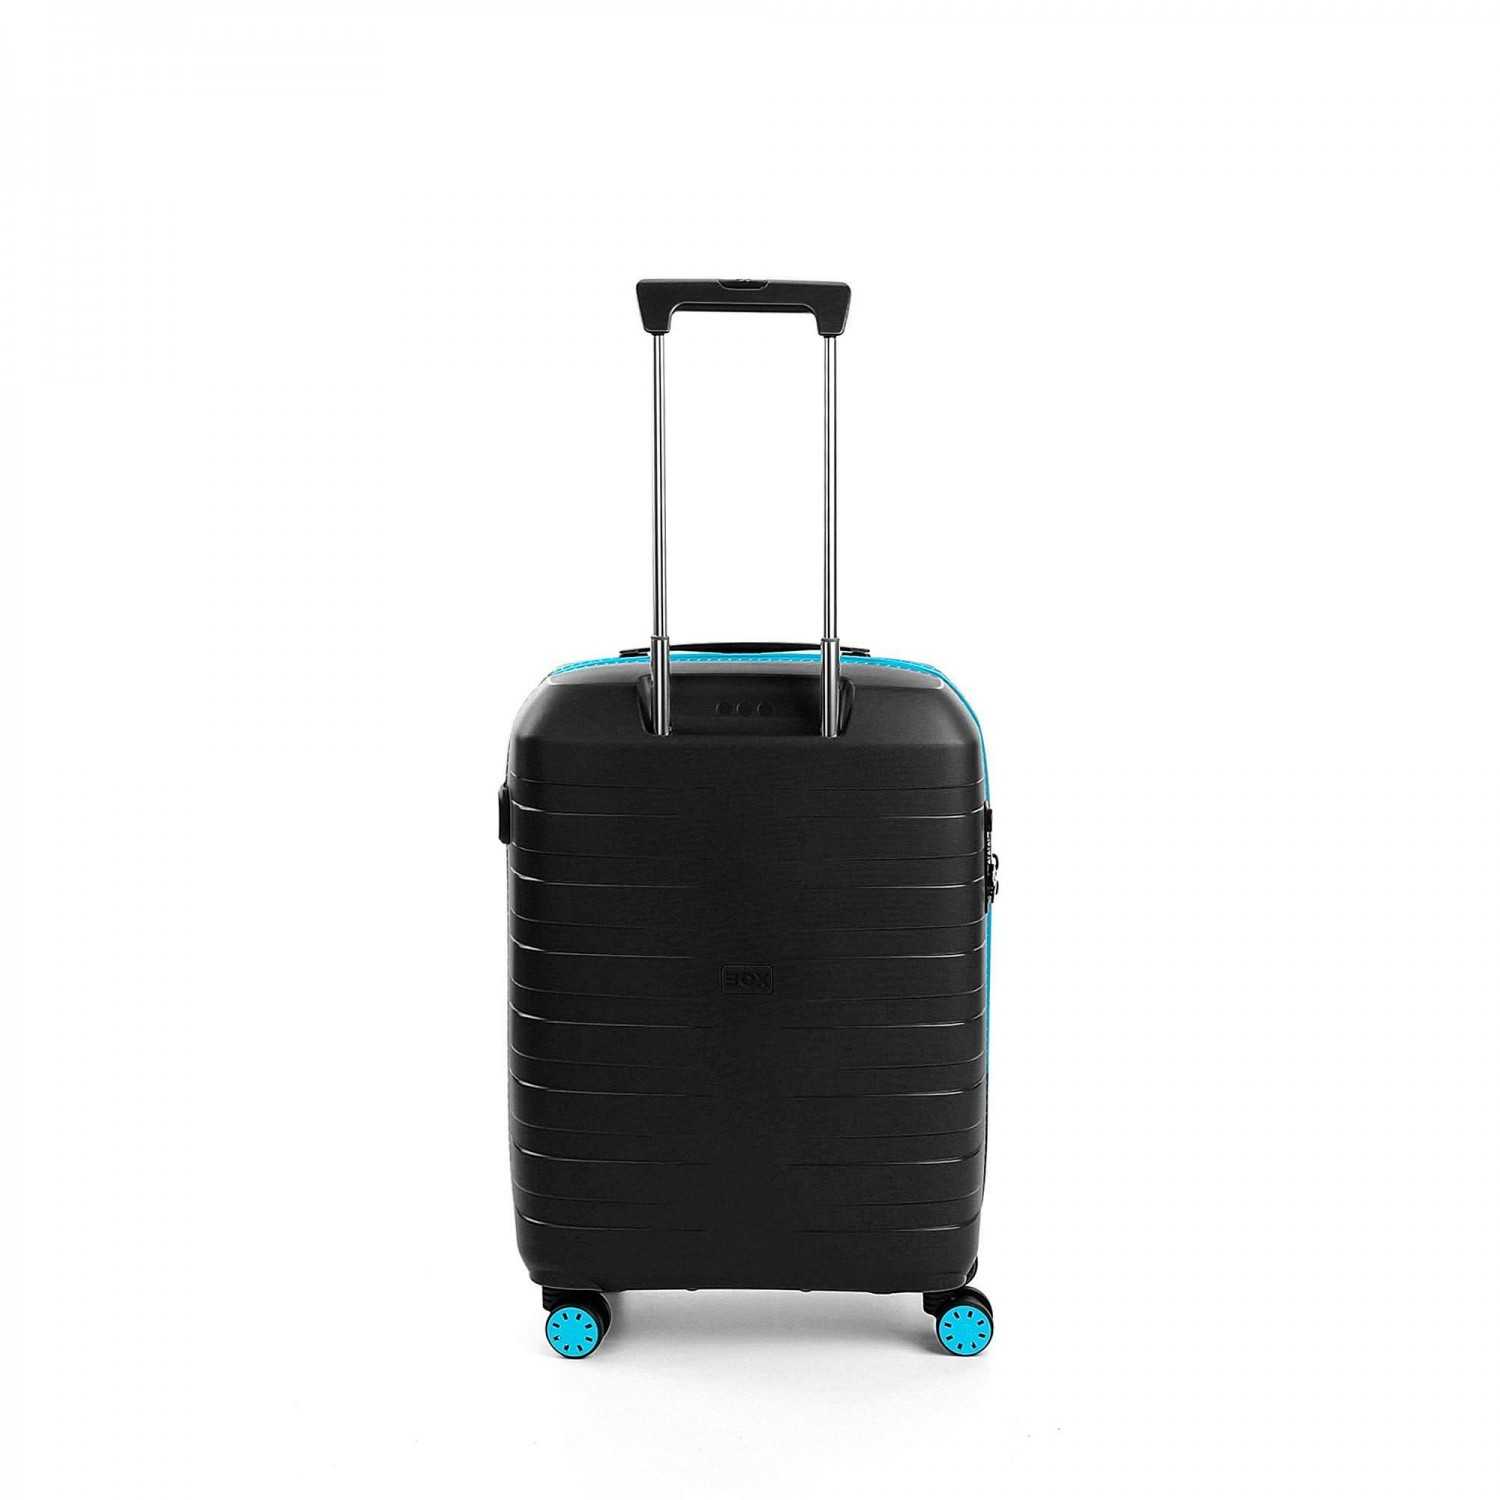 Чемодан пластиковый Roncato BOX YOUNG CABIN LUGGAGE AZZURRO NERO